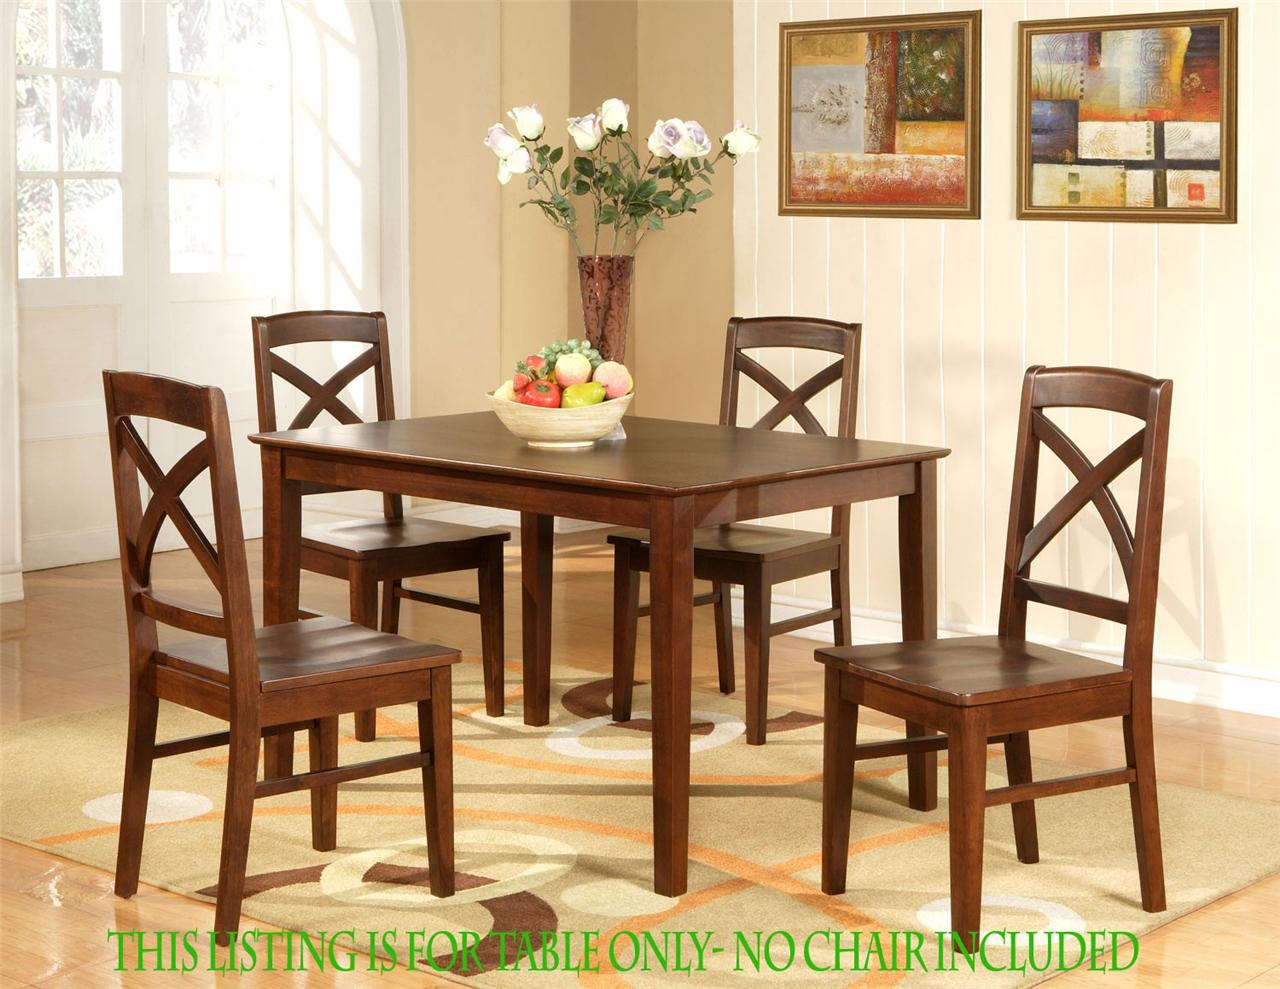 rectangular dining room kitchen table 36 x48 in espresso color no chair ebay. Black Bedroom Furniture Sets. Home Design Ideas